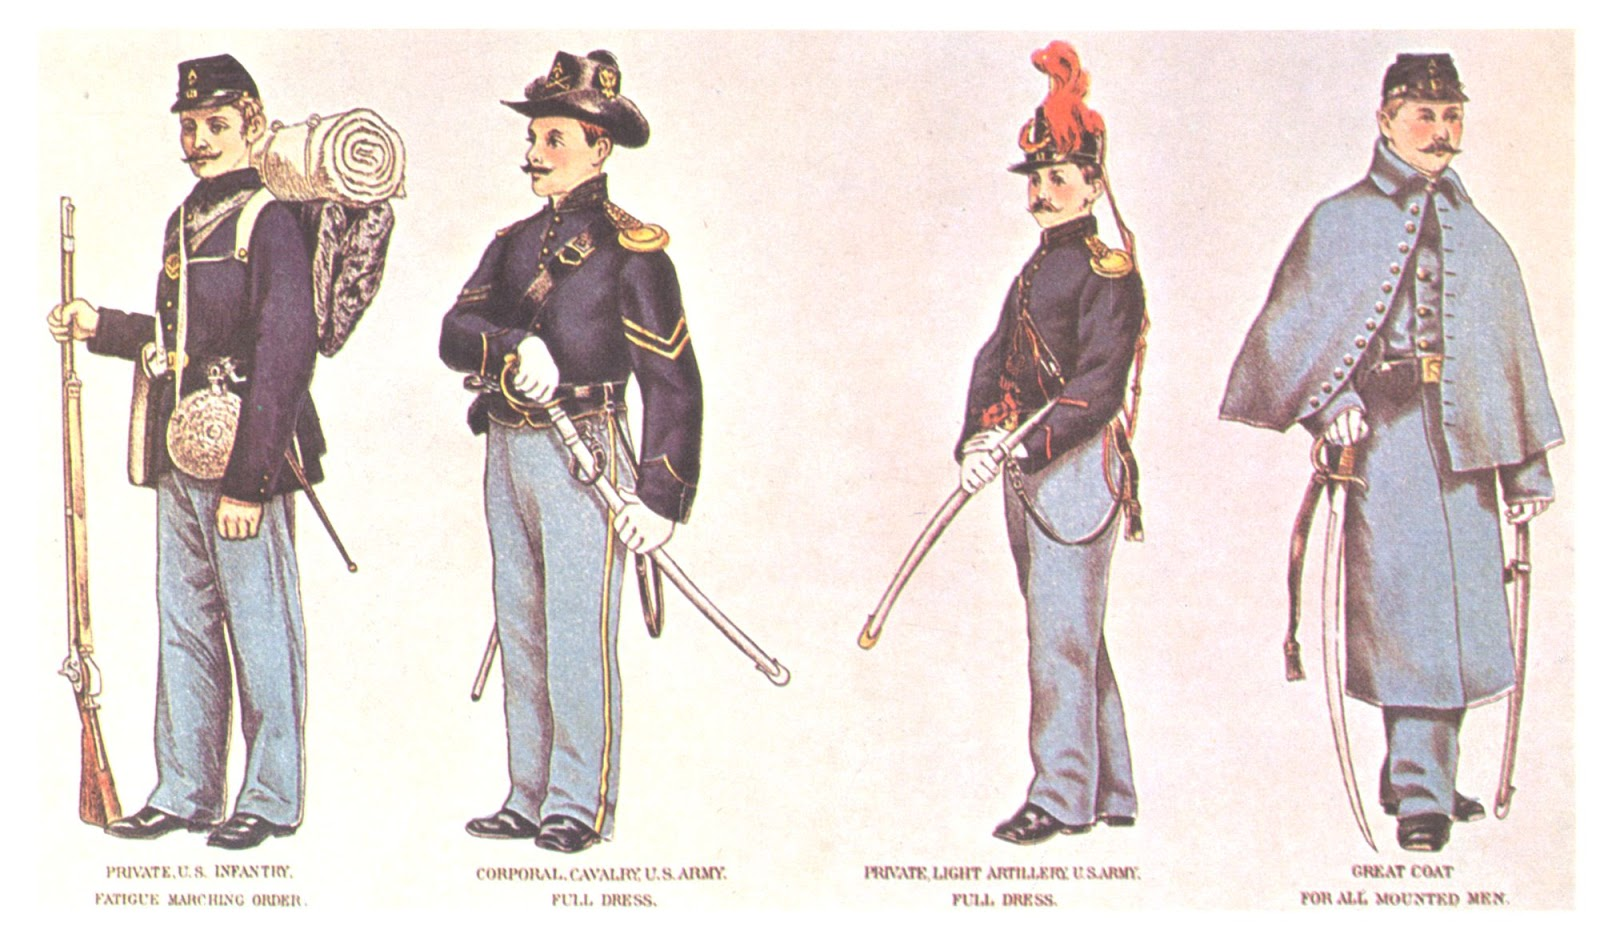 Images and Facts About Union Army Uniforms